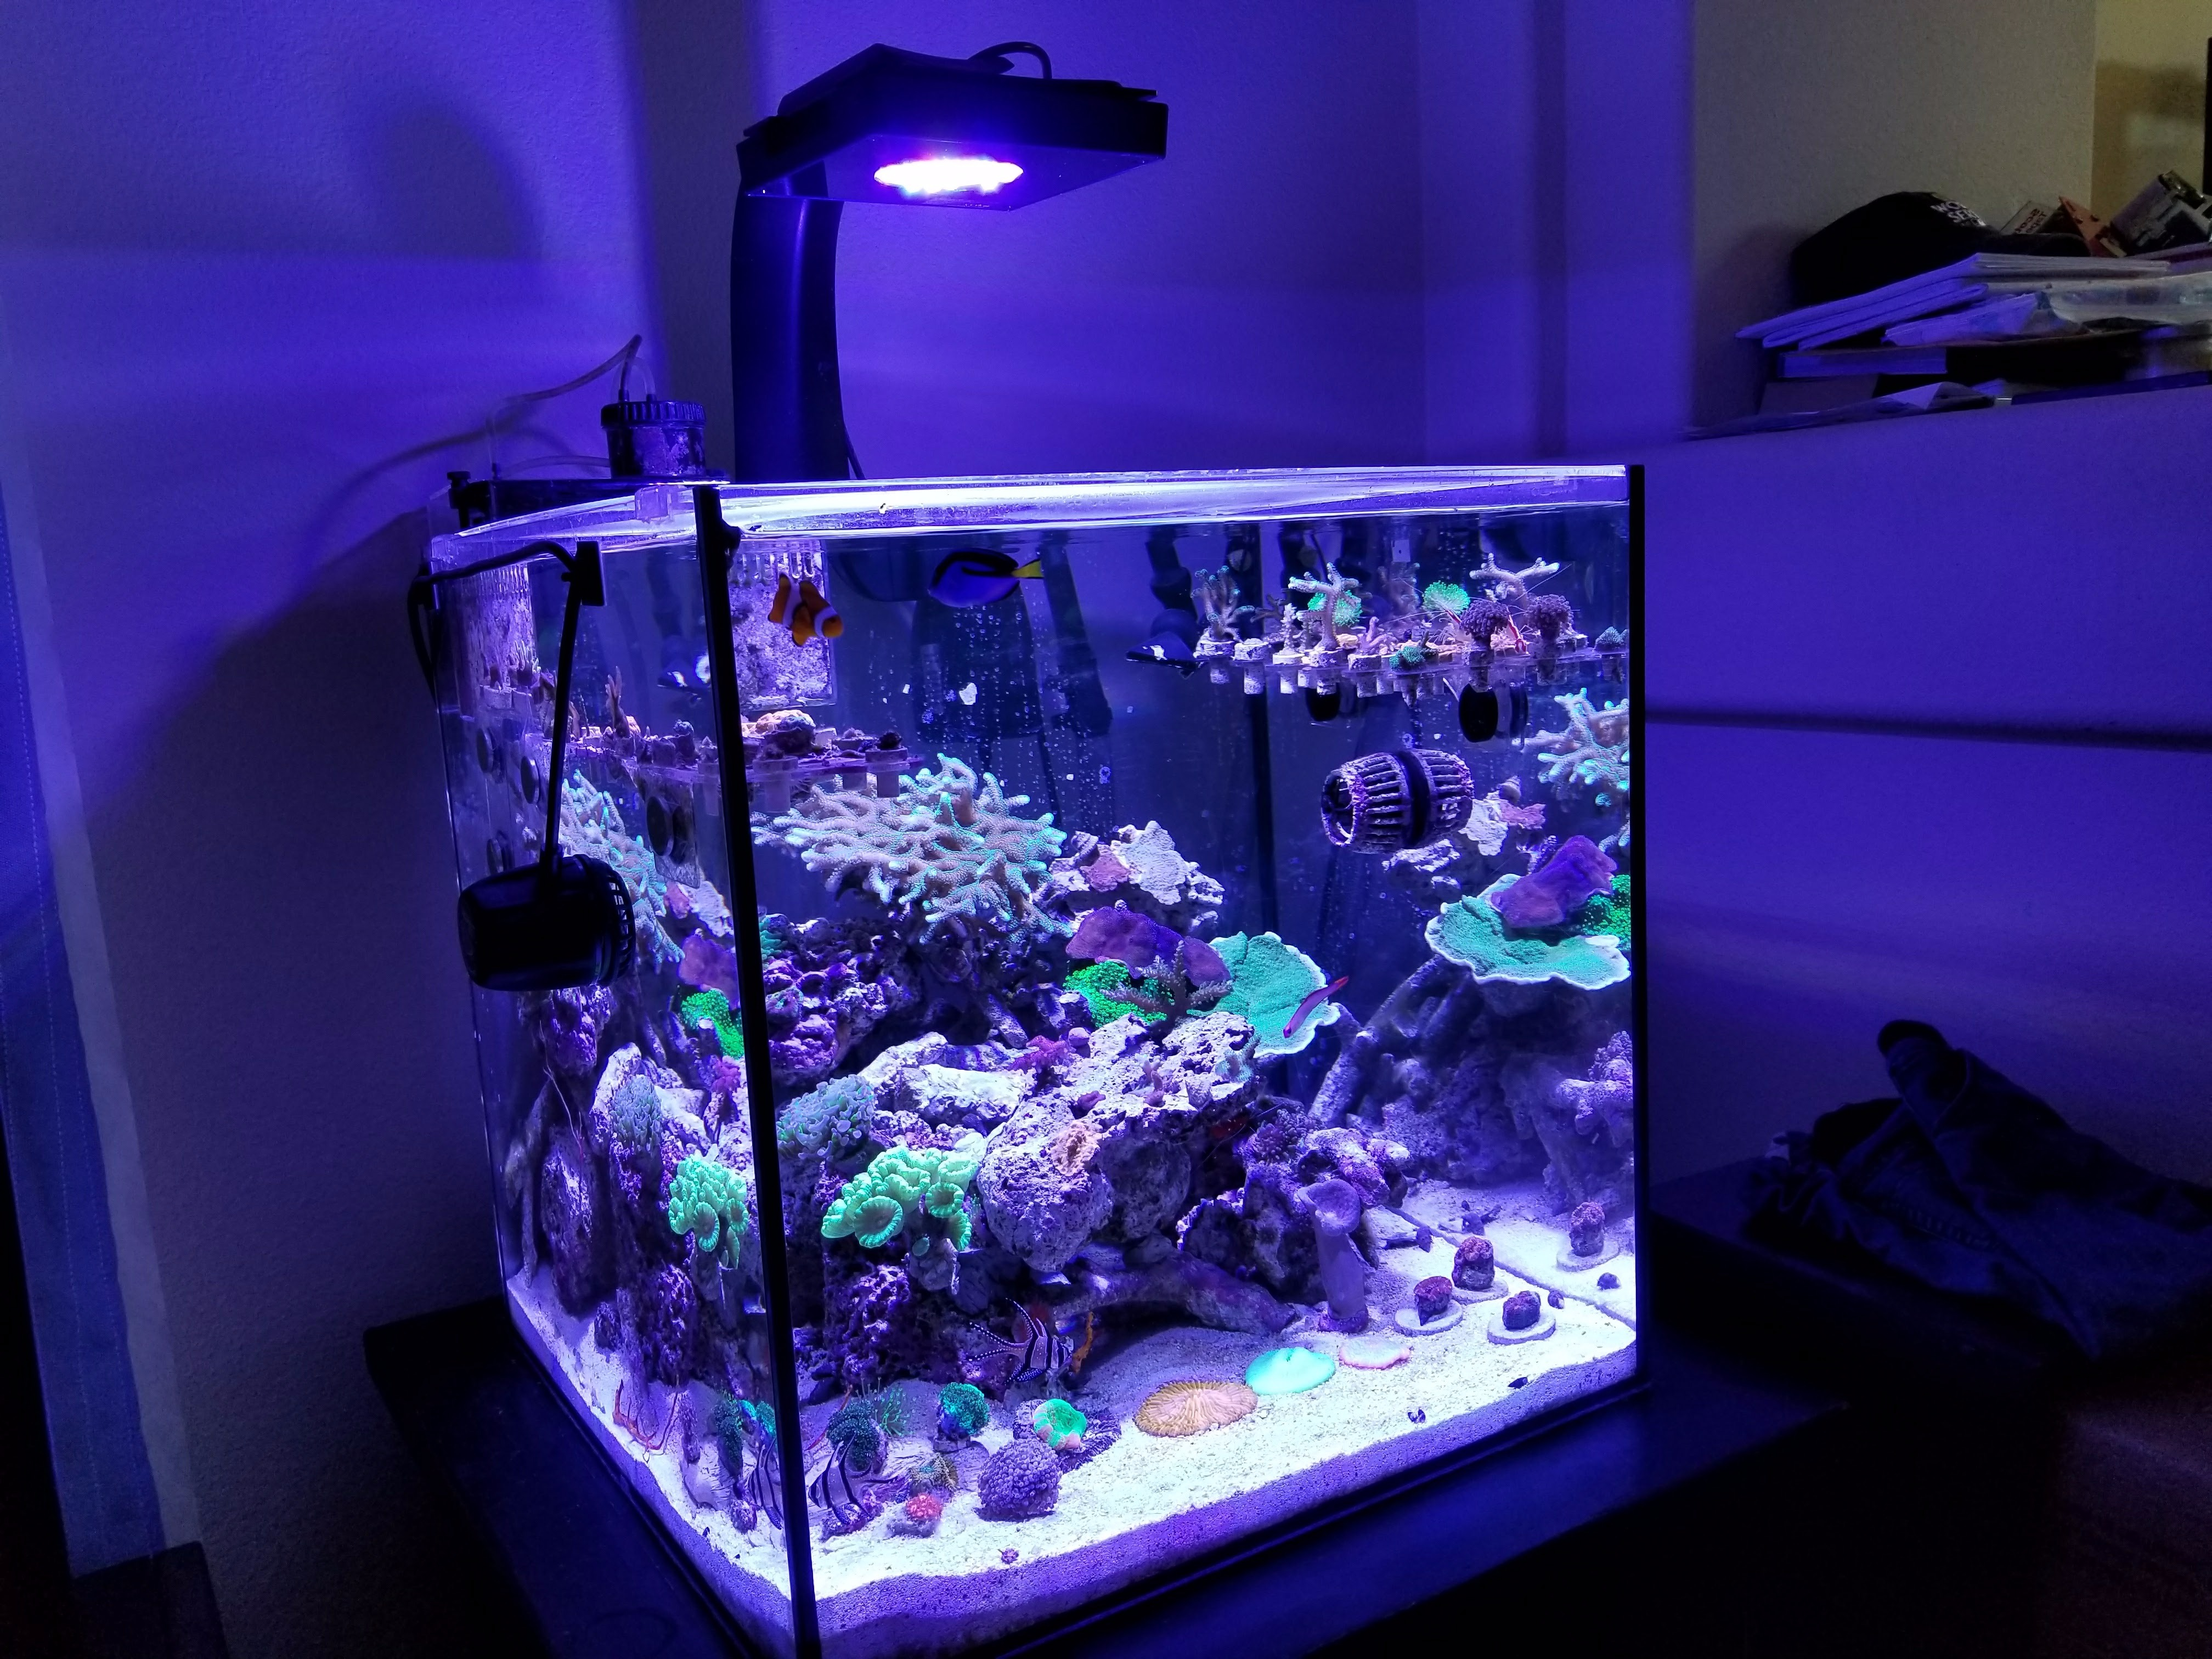 instructions aquarium to for tank top tool this dremel products was i say co on lip lights a op plant endlers allow with original light the led nano rimless use gallon using plastic spectrum trim able fluval only but